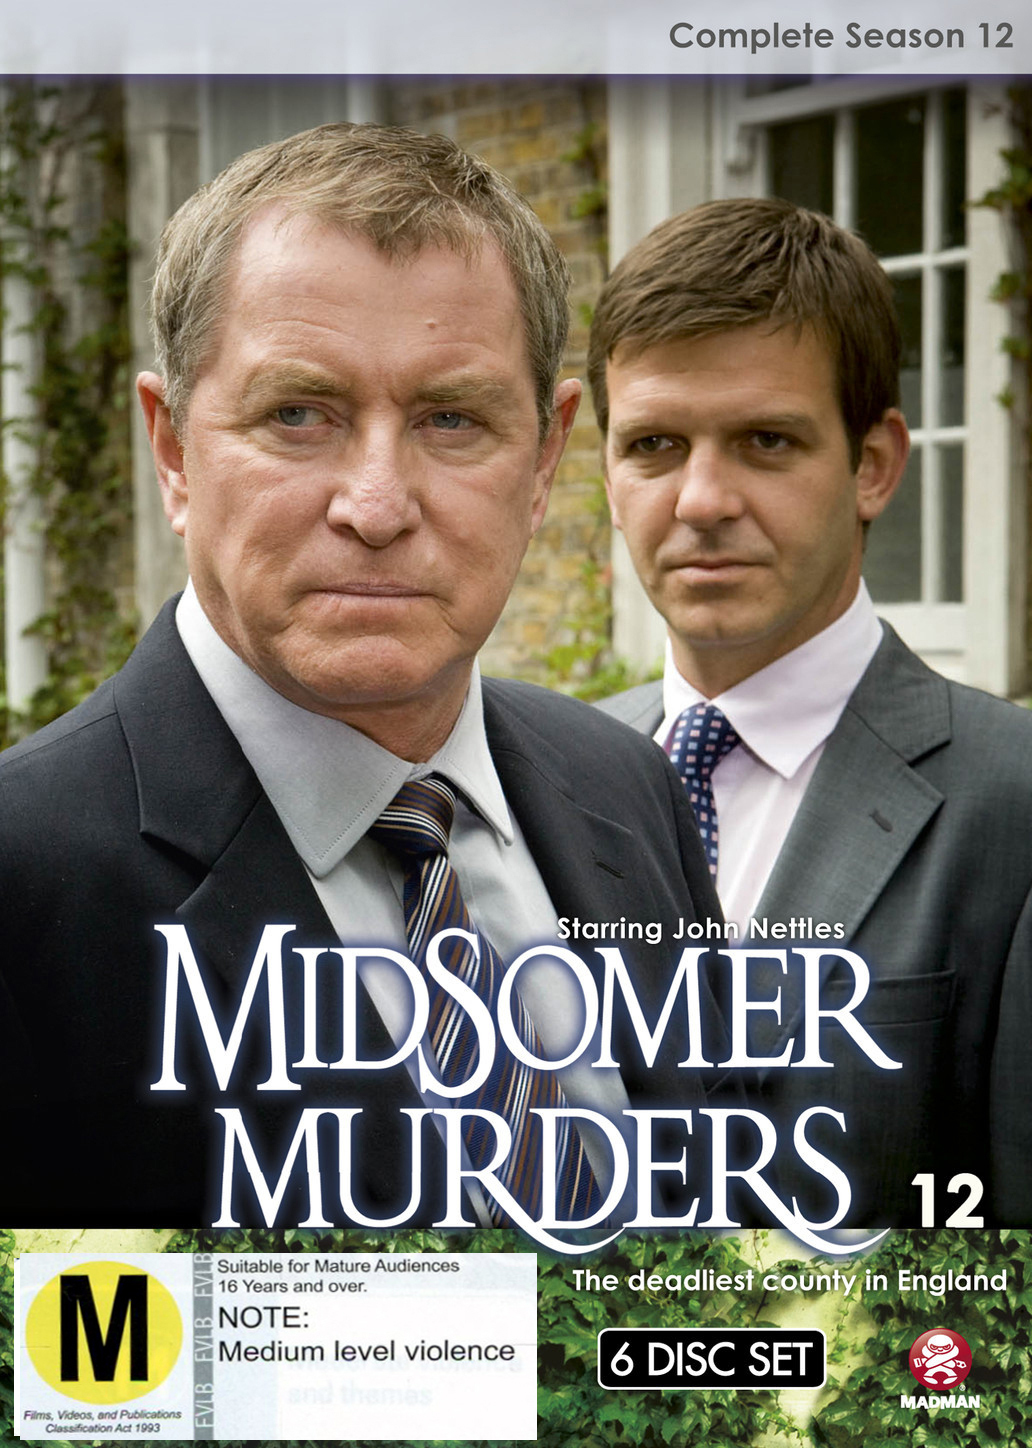 Midsomer Murders - Complete Season 12 (Single Case) on DVD image